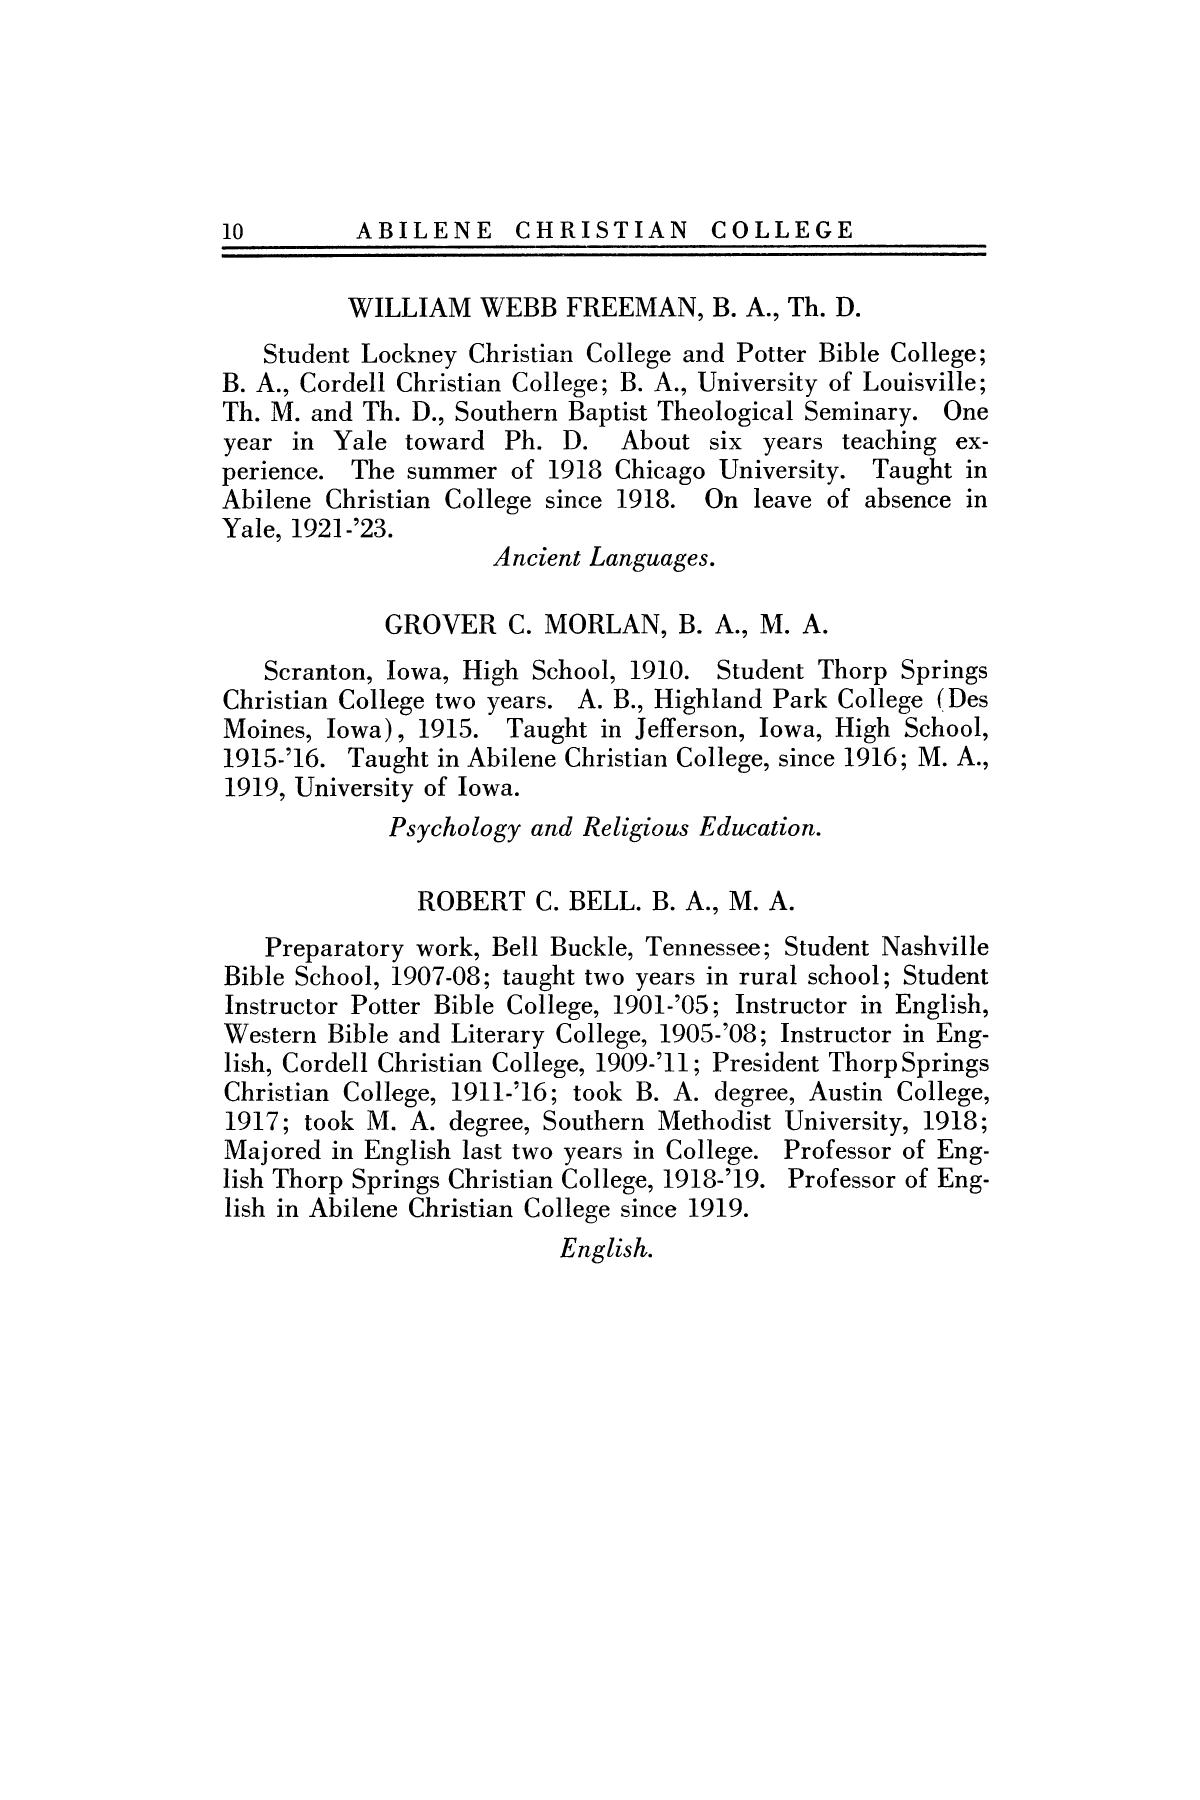 Catalog of Abilene Christian College, 1922-1923                                                                                                      10